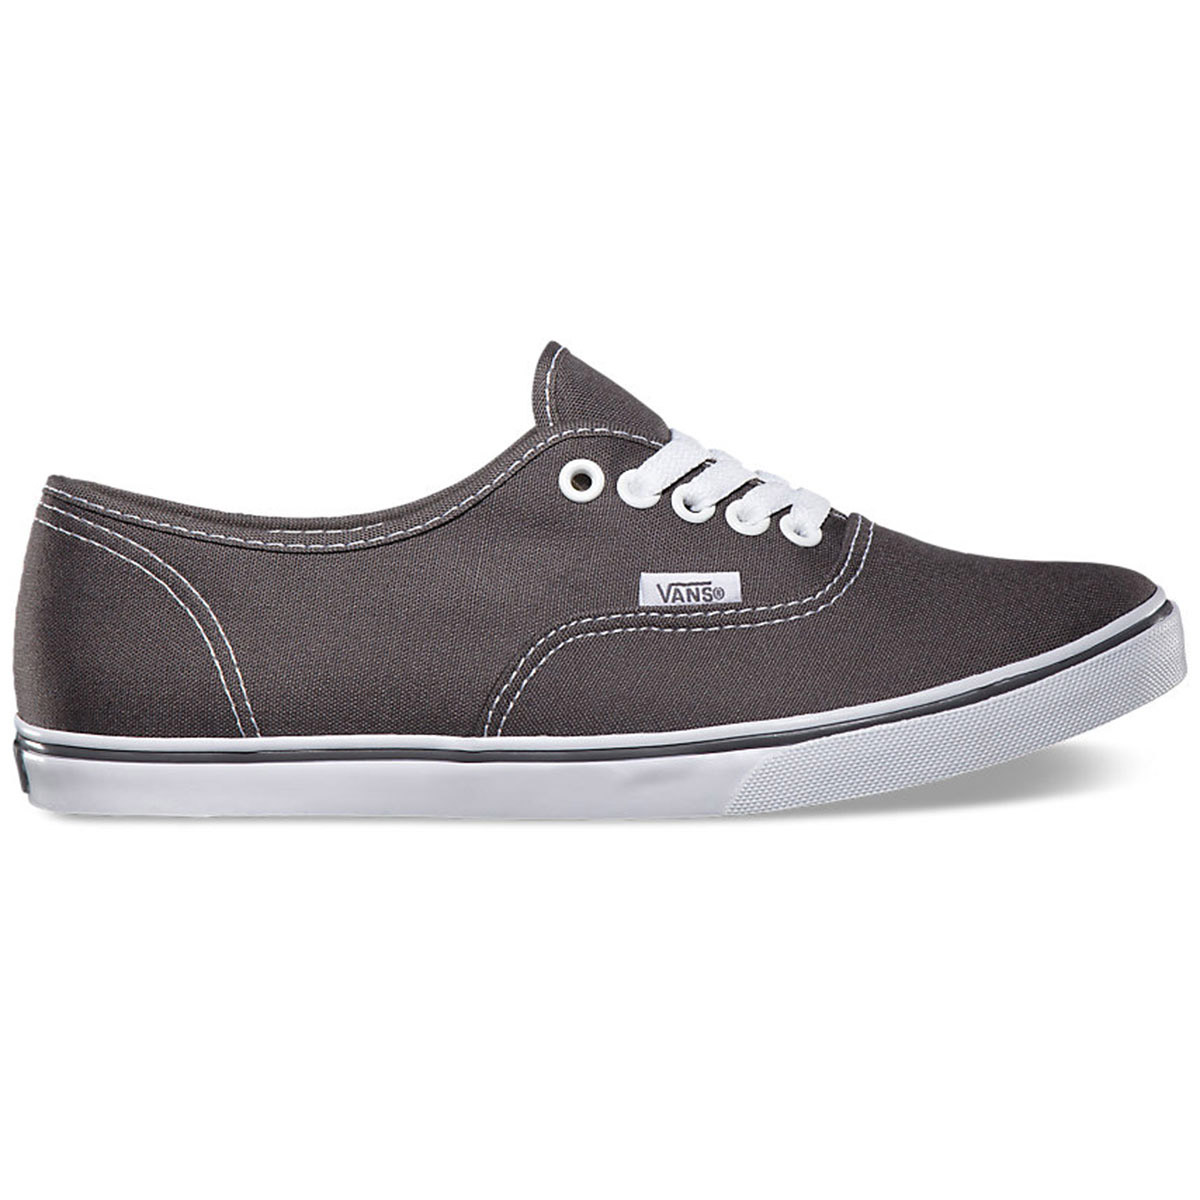 Vans Unisex Authentic Lo Pro Shoes - Black, 10